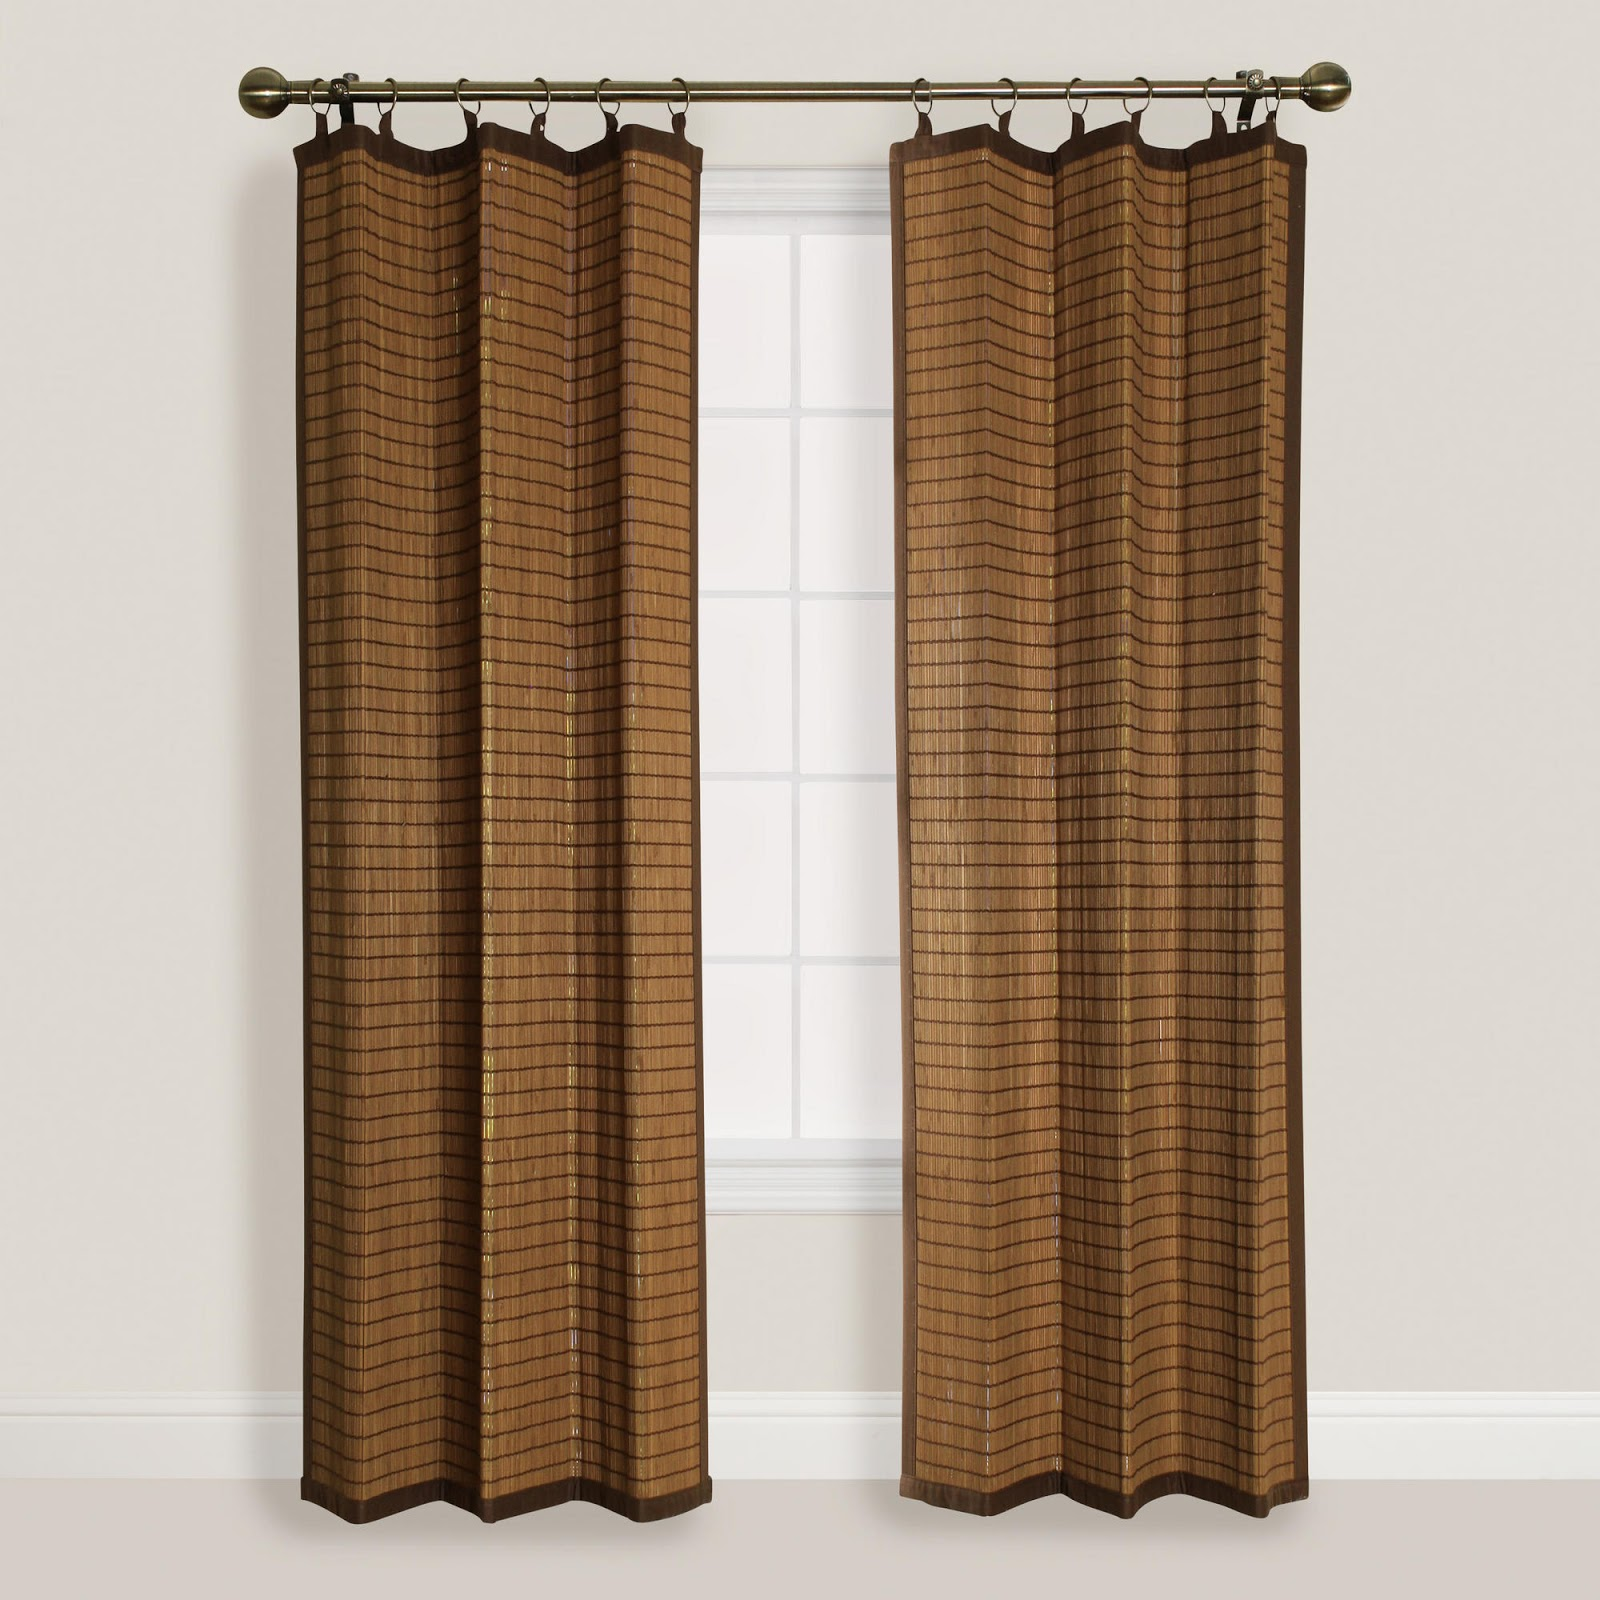 Bamboo Curtains For Doors Canvas Curtains for Outdoors